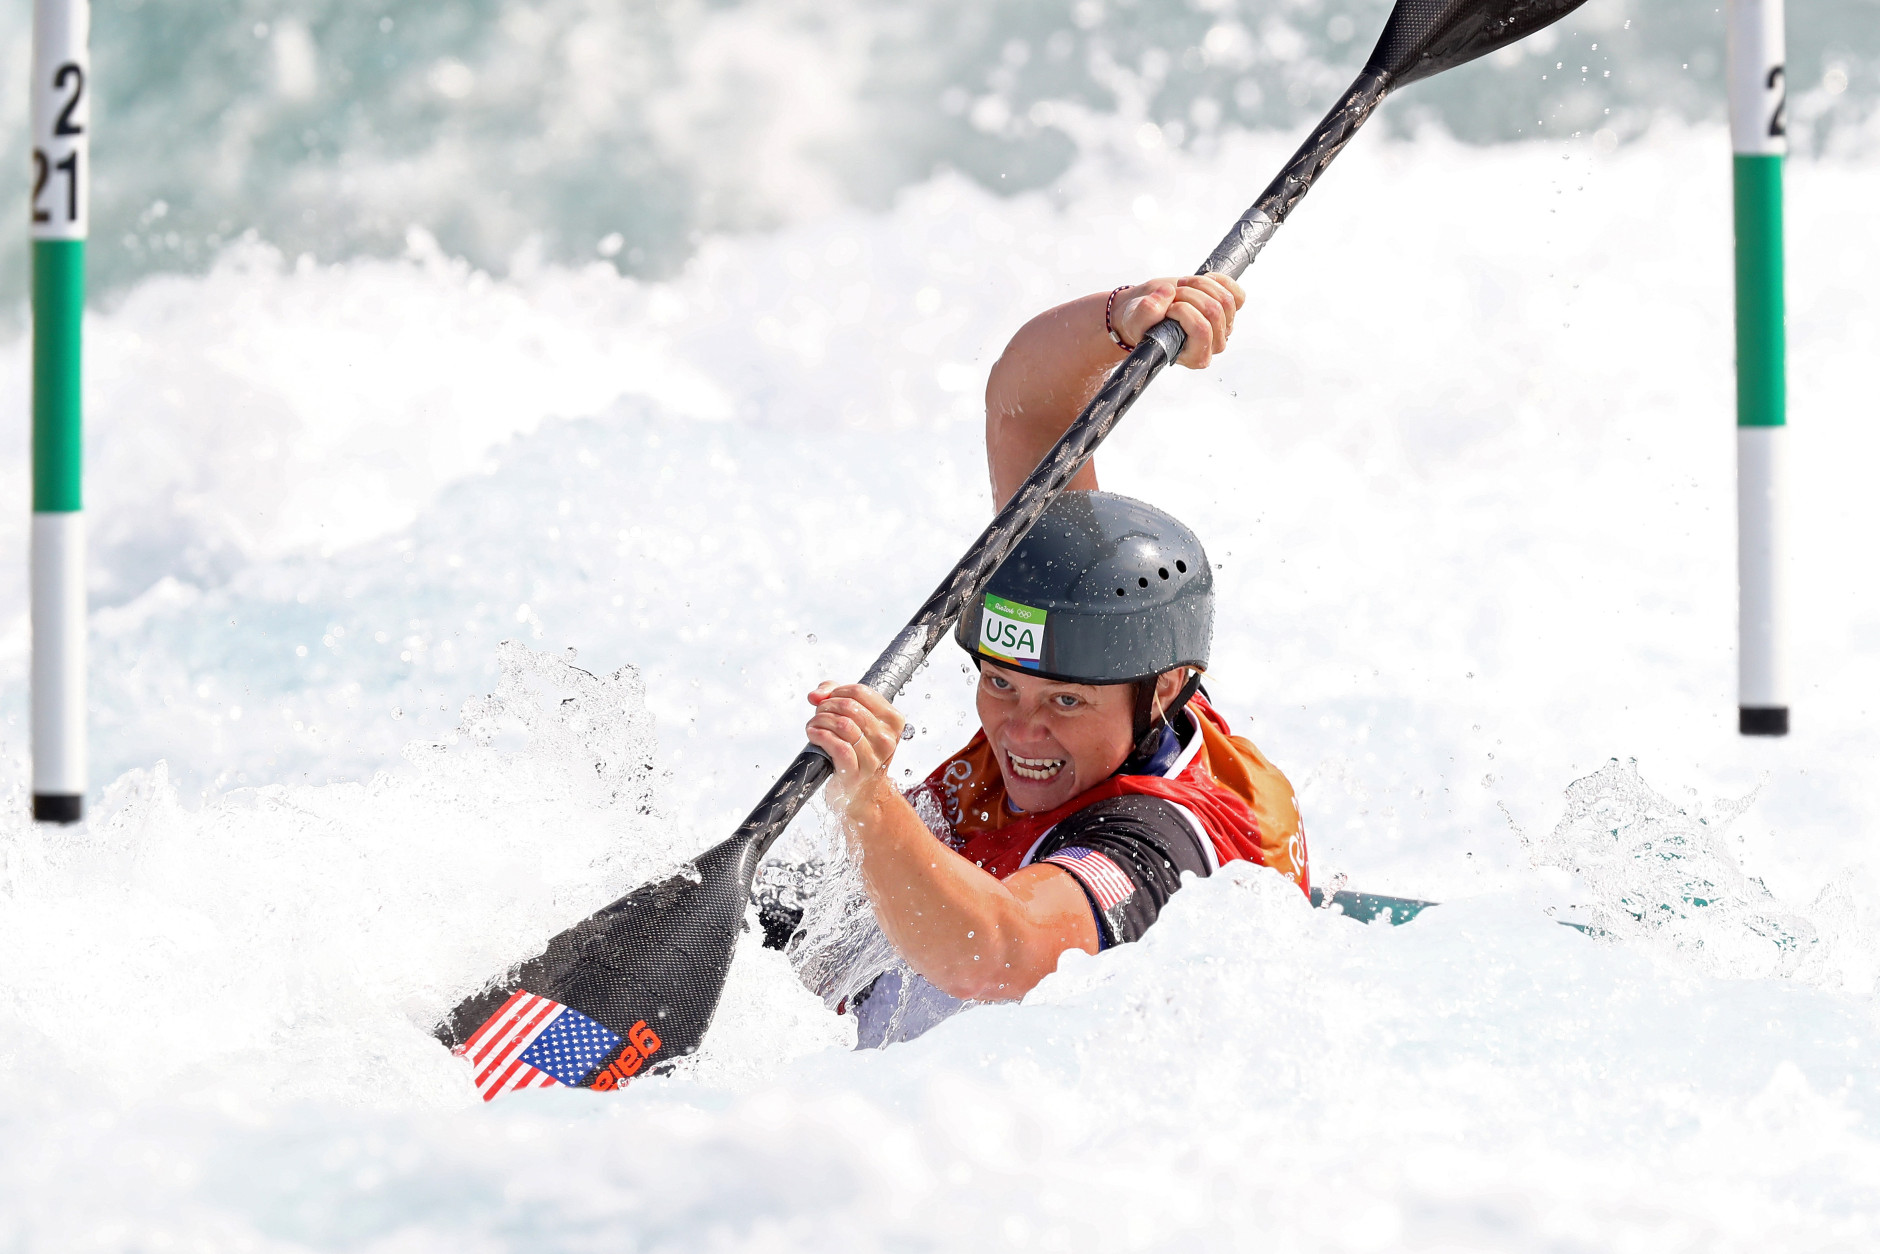 RIO DE JANEIRO, BRAZIL - AUGUST 08:  Ashley Nee of the United States competes during the Women's Kayak Slalom (K1) heats on Day 3 of the Rio 2016 Olympic Games at the Whitewater Stadium on August 8, 2016 in Rio de Janeiro, Brazil.  (Photo by Alexander Hassenstein/Getty Images)